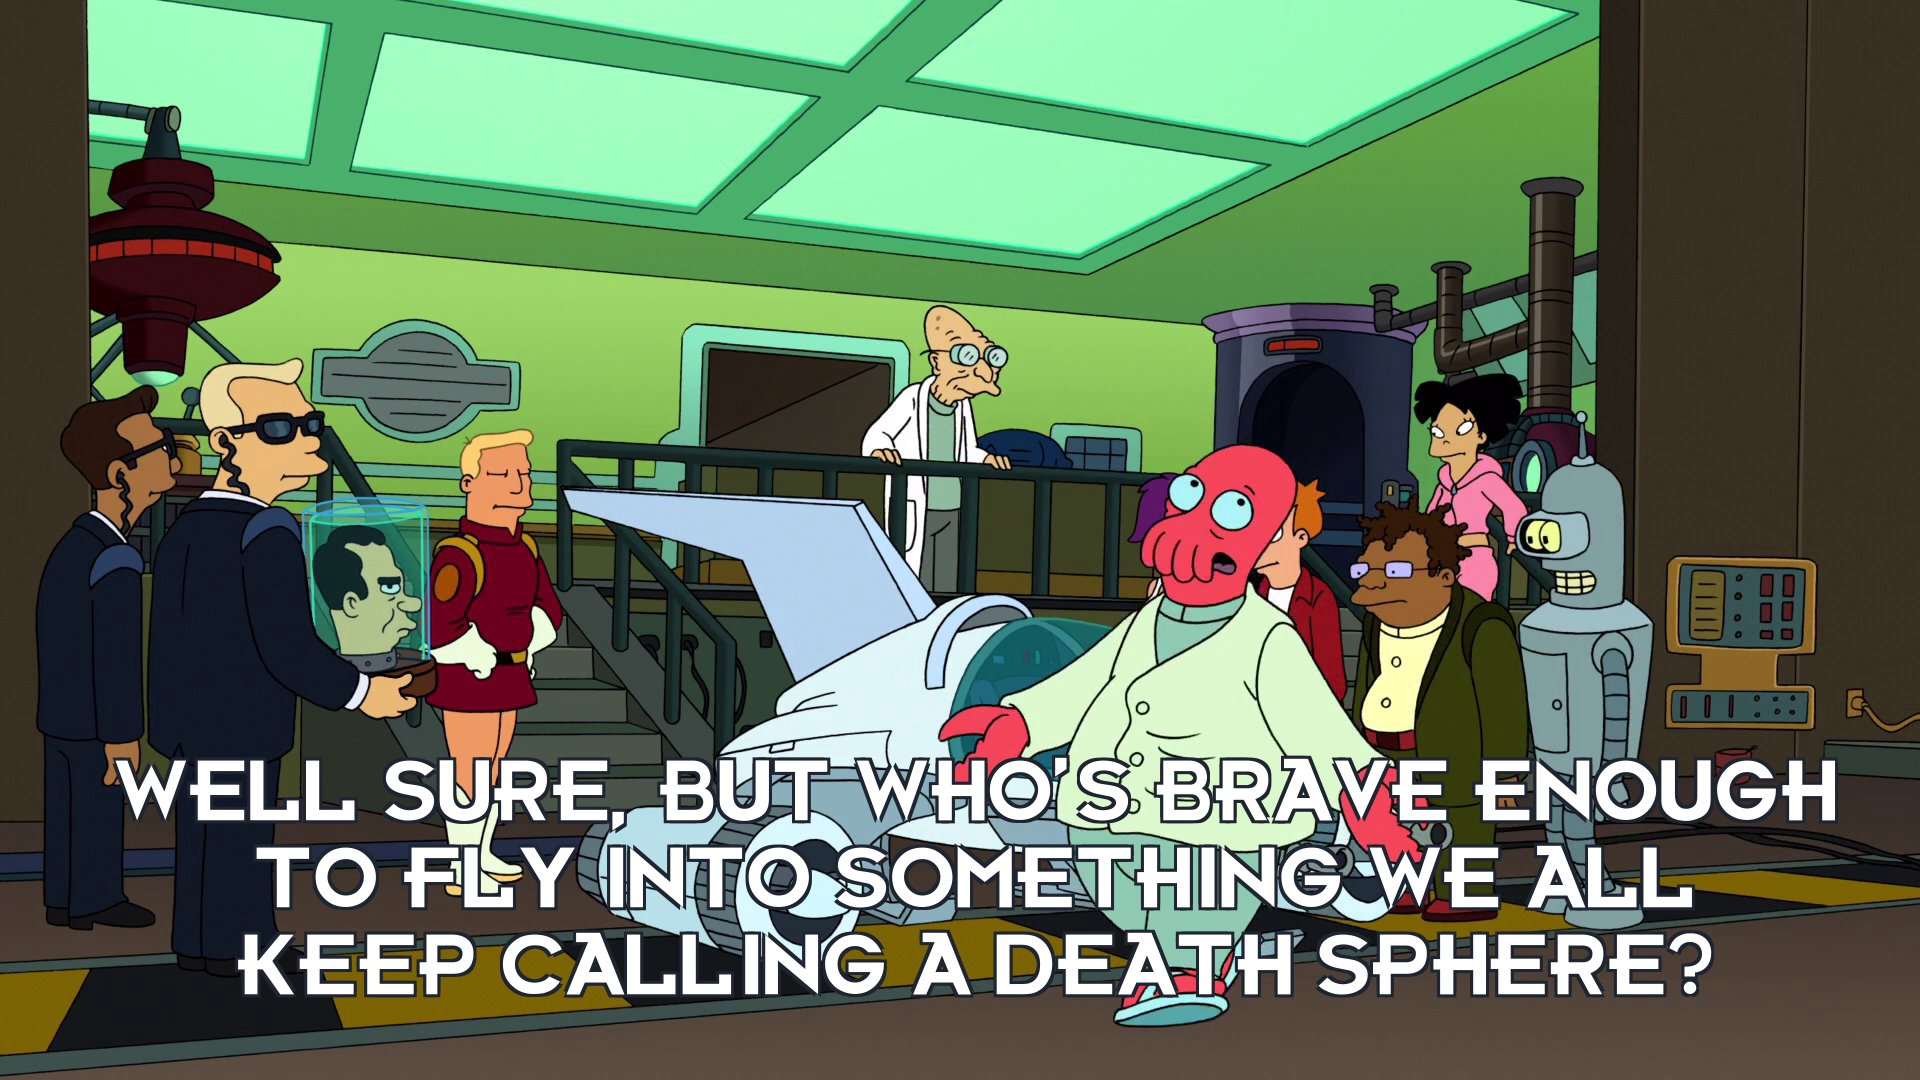 Dr John A Zoidberg: Well sure, but who's brave enough to fly into something we all keep calling a death sphere?